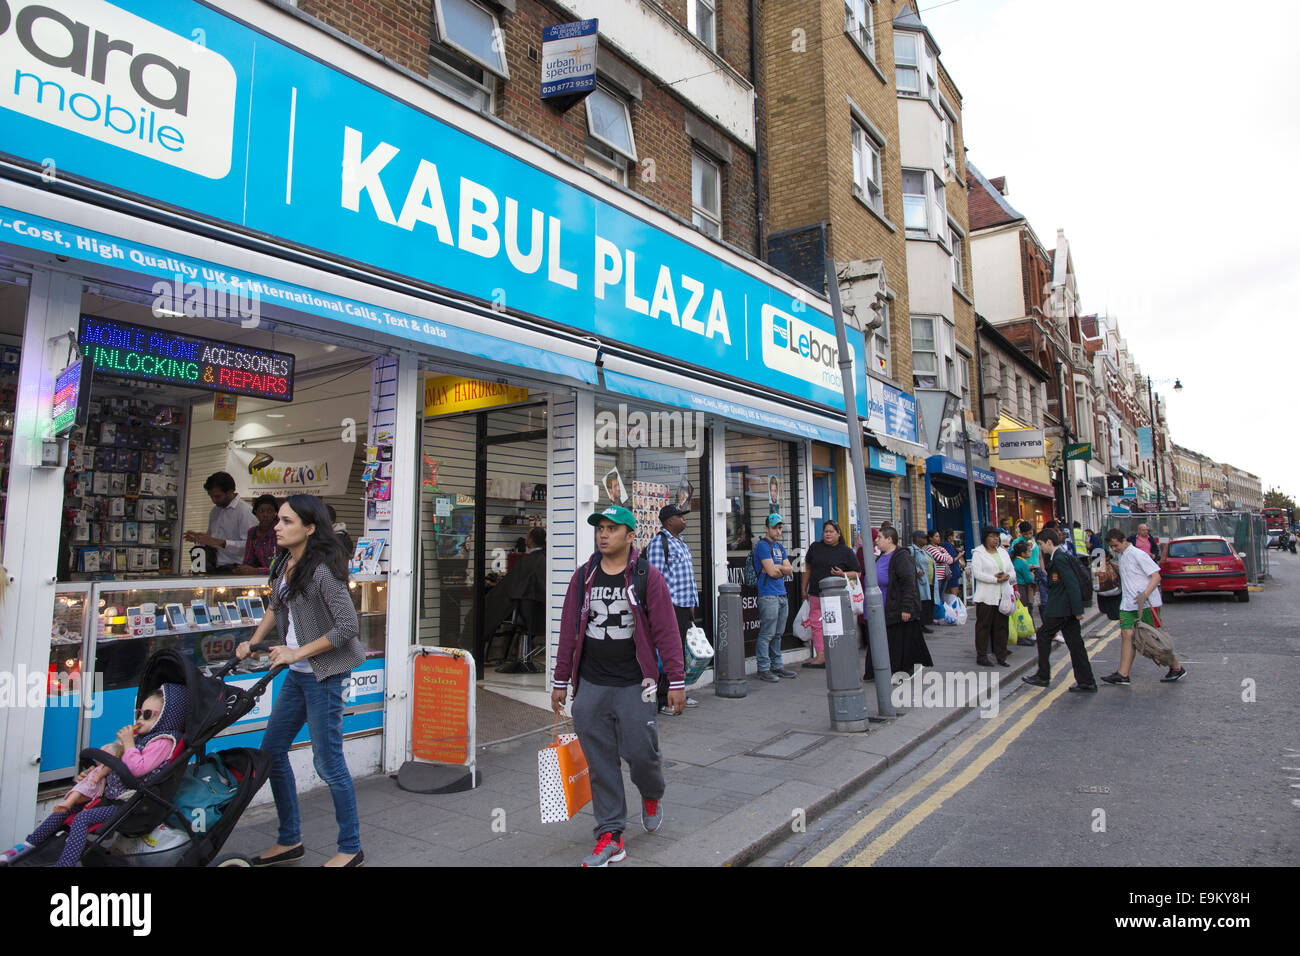 Kabul Plaza, High Street, Harlesden, Northwest London, England, UK - Stock Image